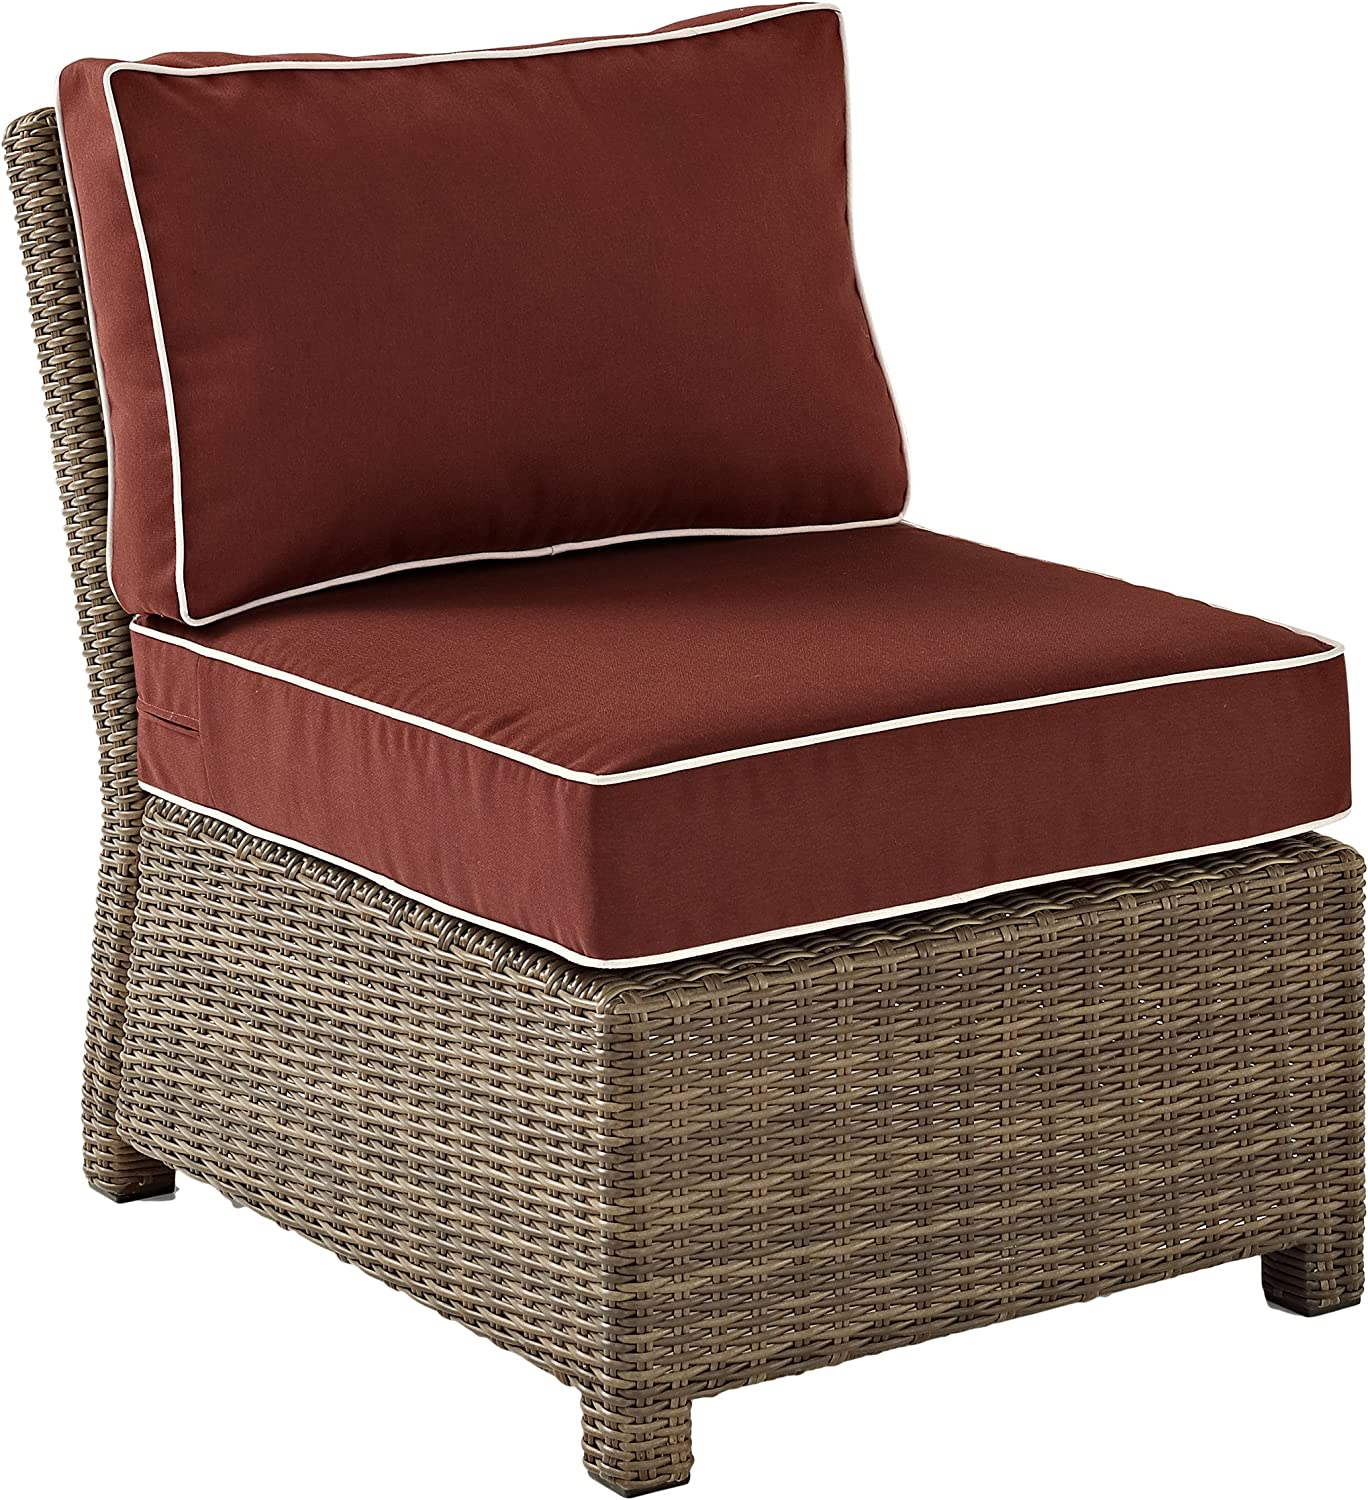 Crosley Furniture KO70017WB-SG Bradenton Outdoor Wicker Sectional Center Chair, Brown with Sangria Cushions